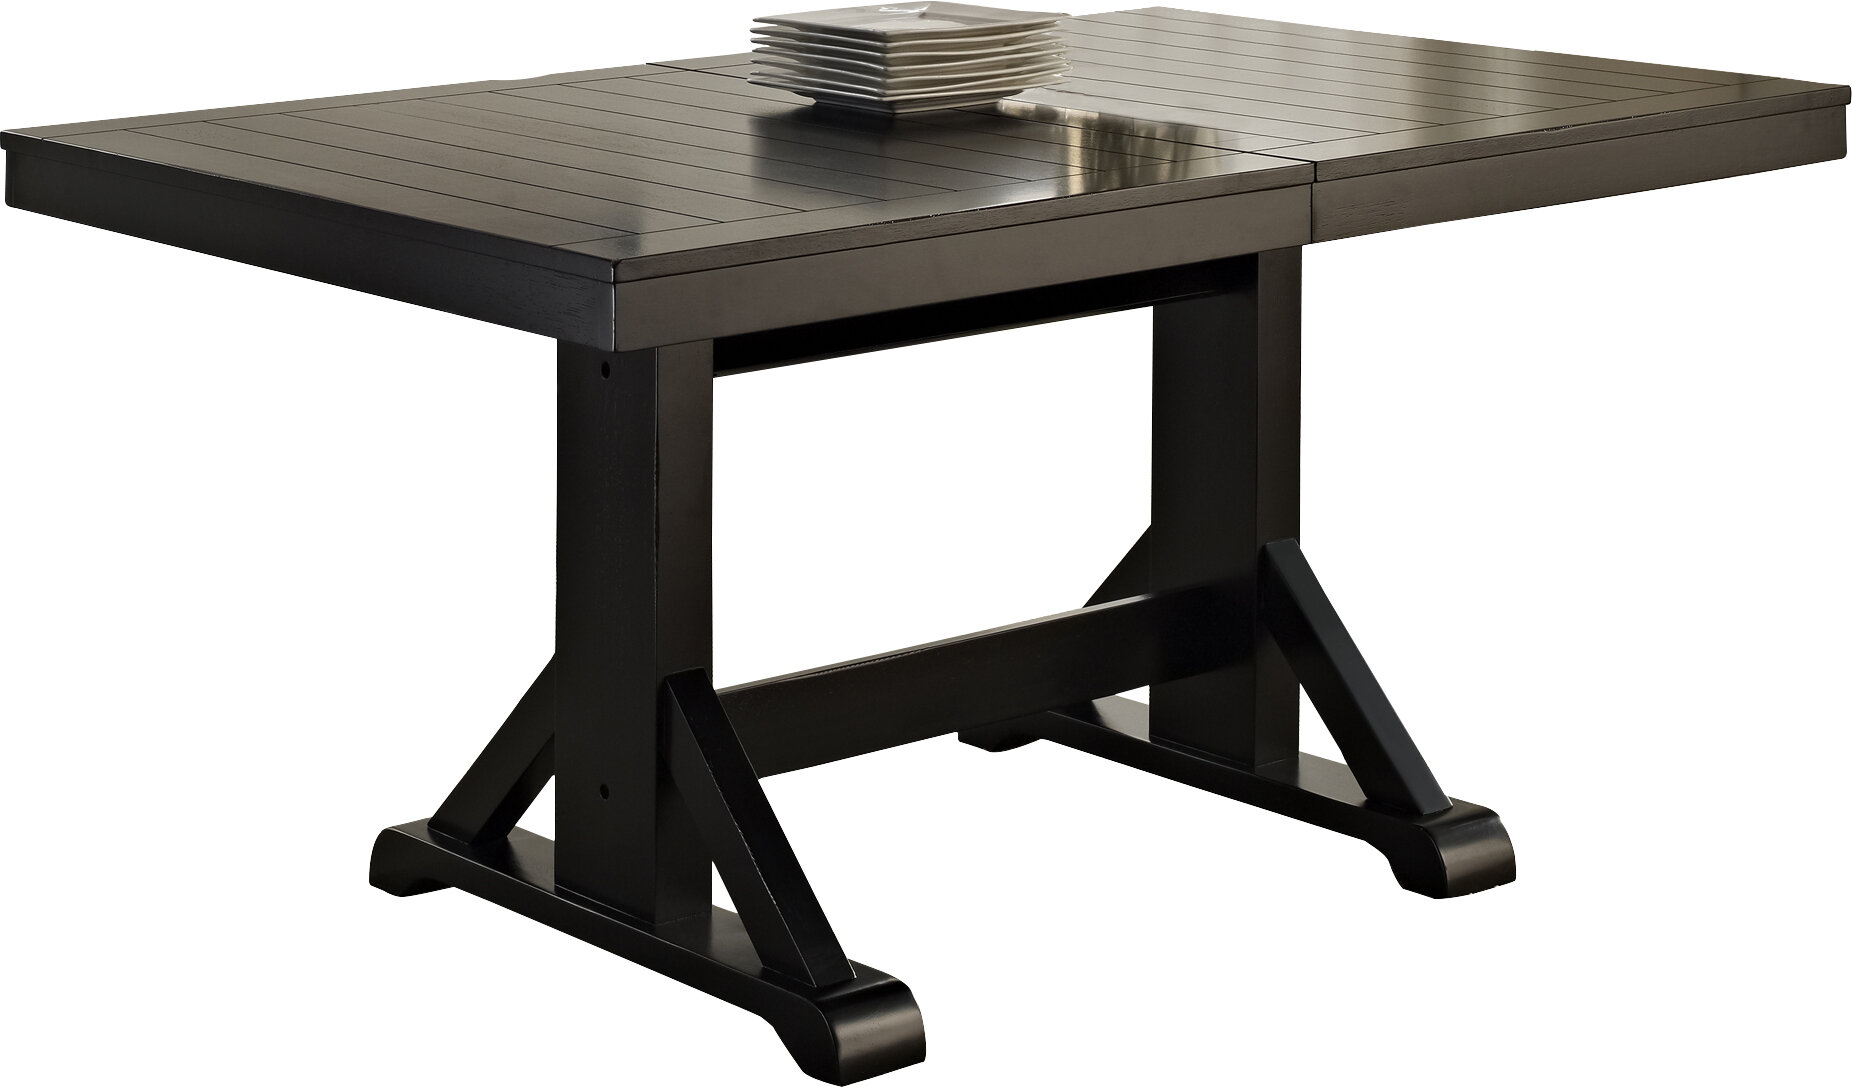 Home Loft Concepts Belfort Extendable Butterfly Leaf Dining Table Reviews Wayfair